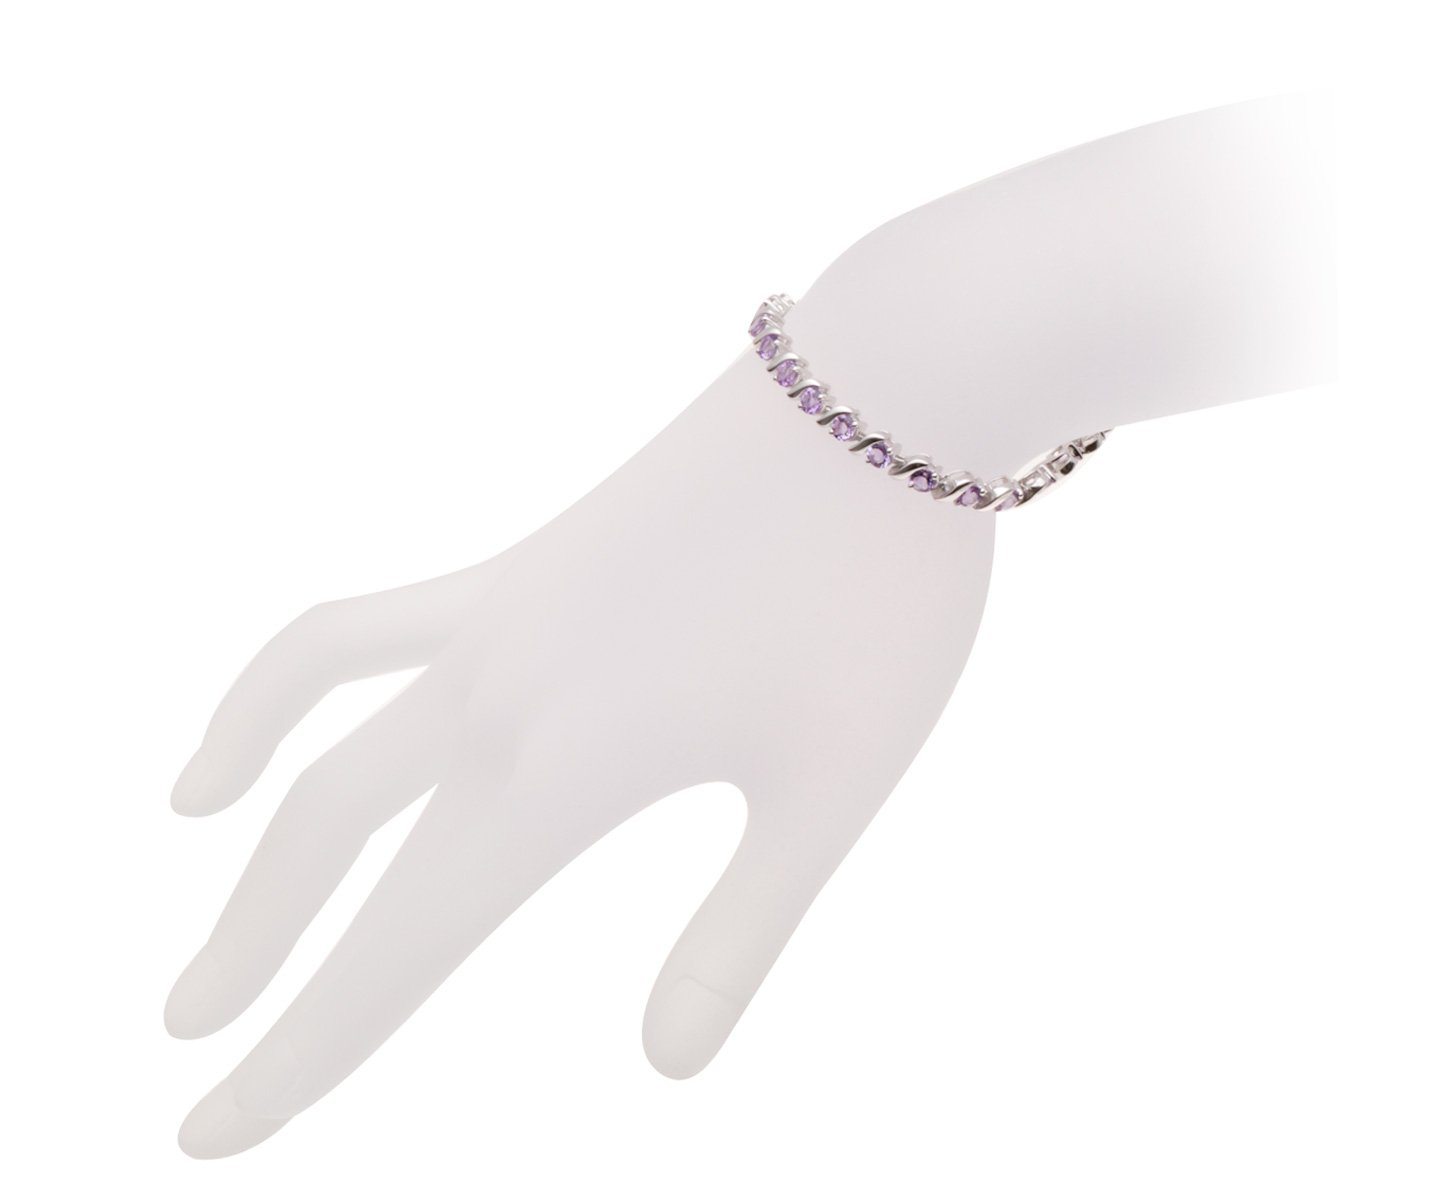 Round 4mm Genuine African Amethyst 6.34 Ct Sterling Silver ''S'' Link Bracelet 7.5 Inches by HUTANG JEWELRY (Image #3)